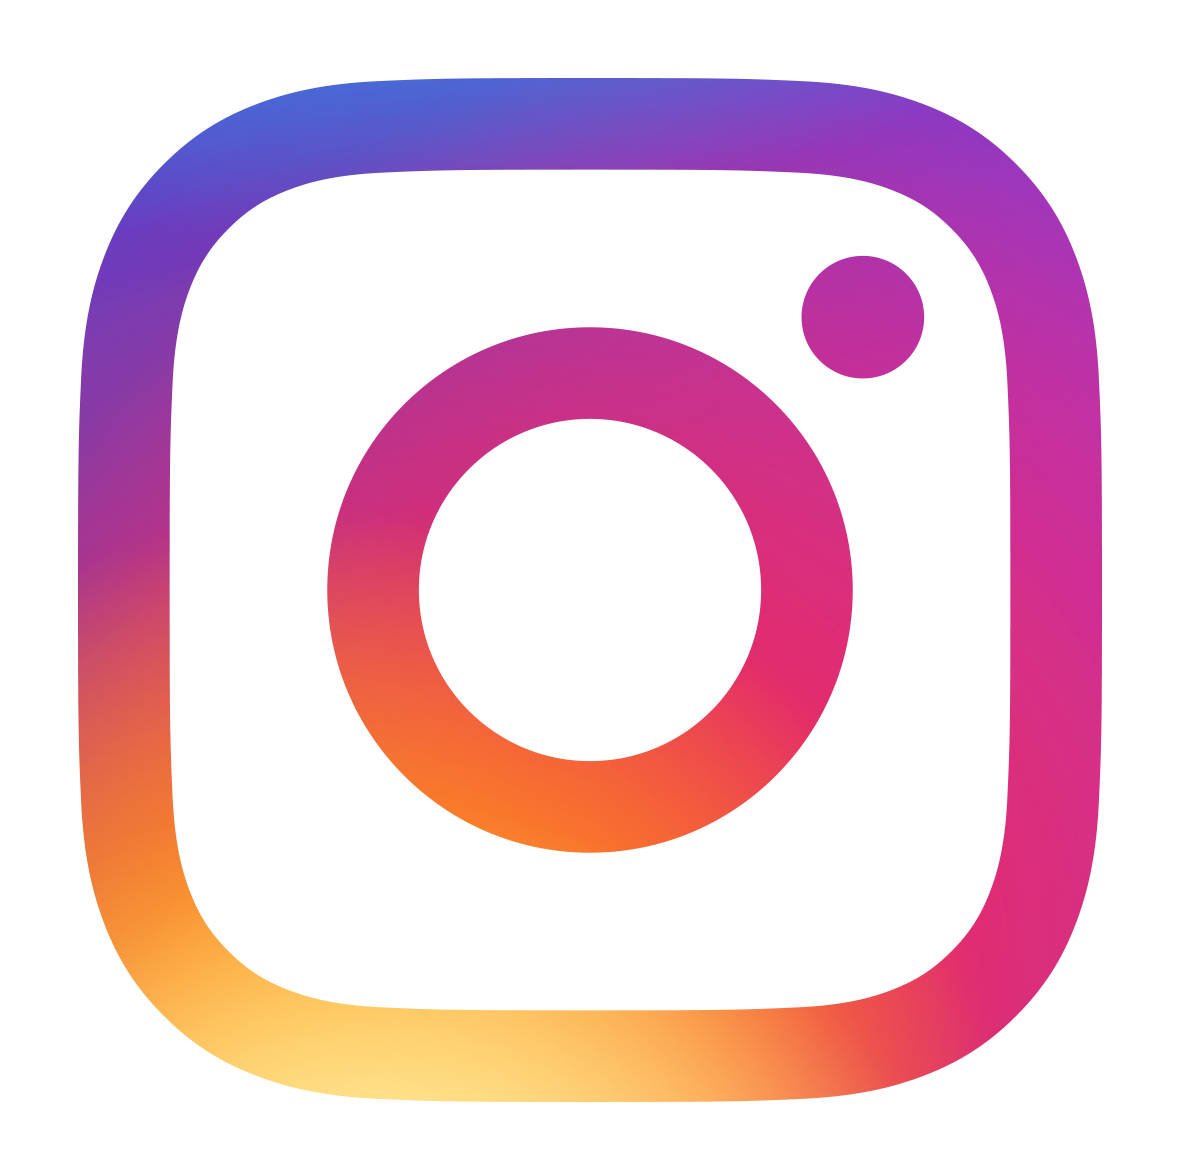 multicolored instagram icon with link to store page